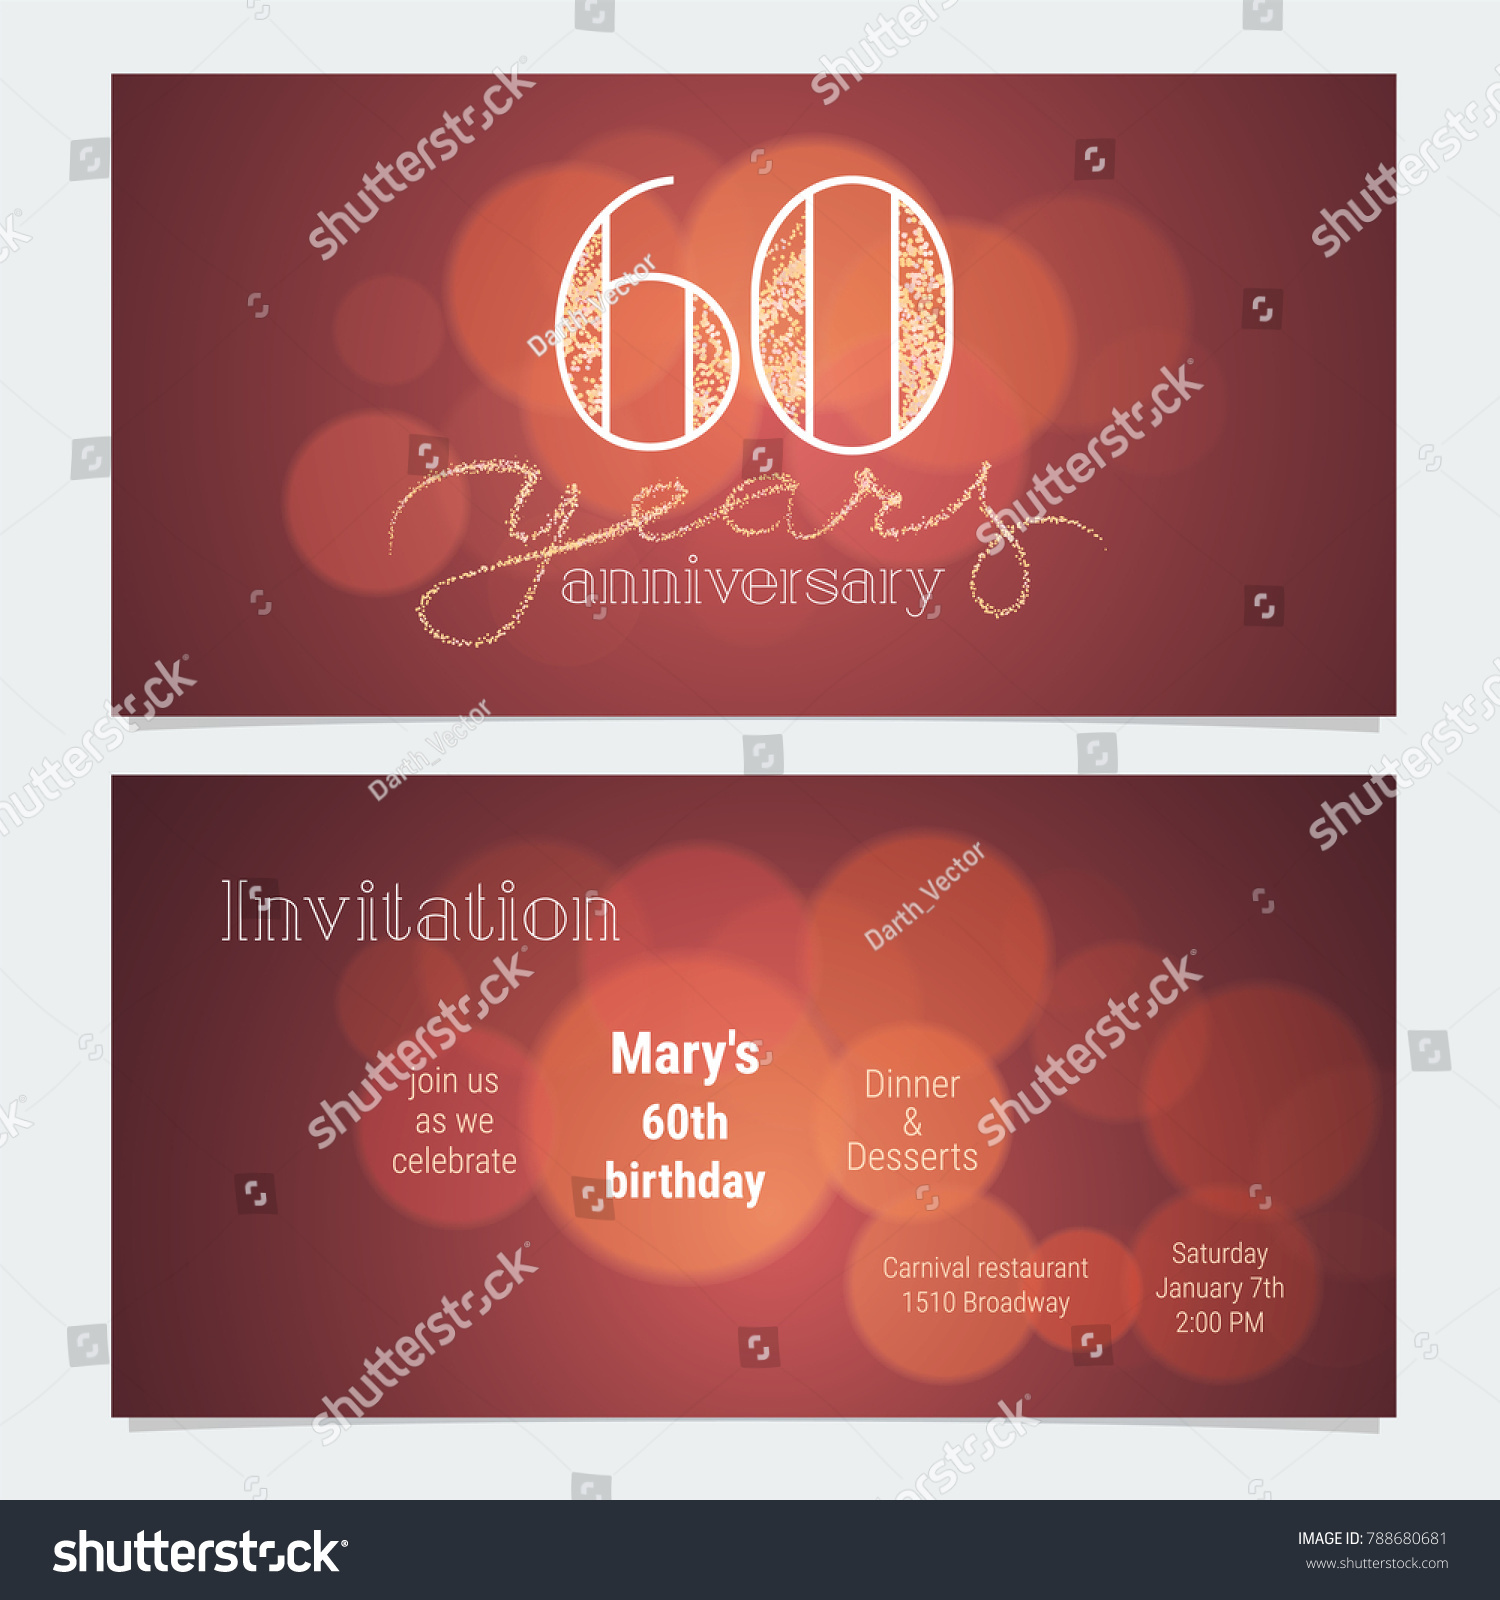 60 Years Anniversary Invitation Celebration Vector Stock Vector ...